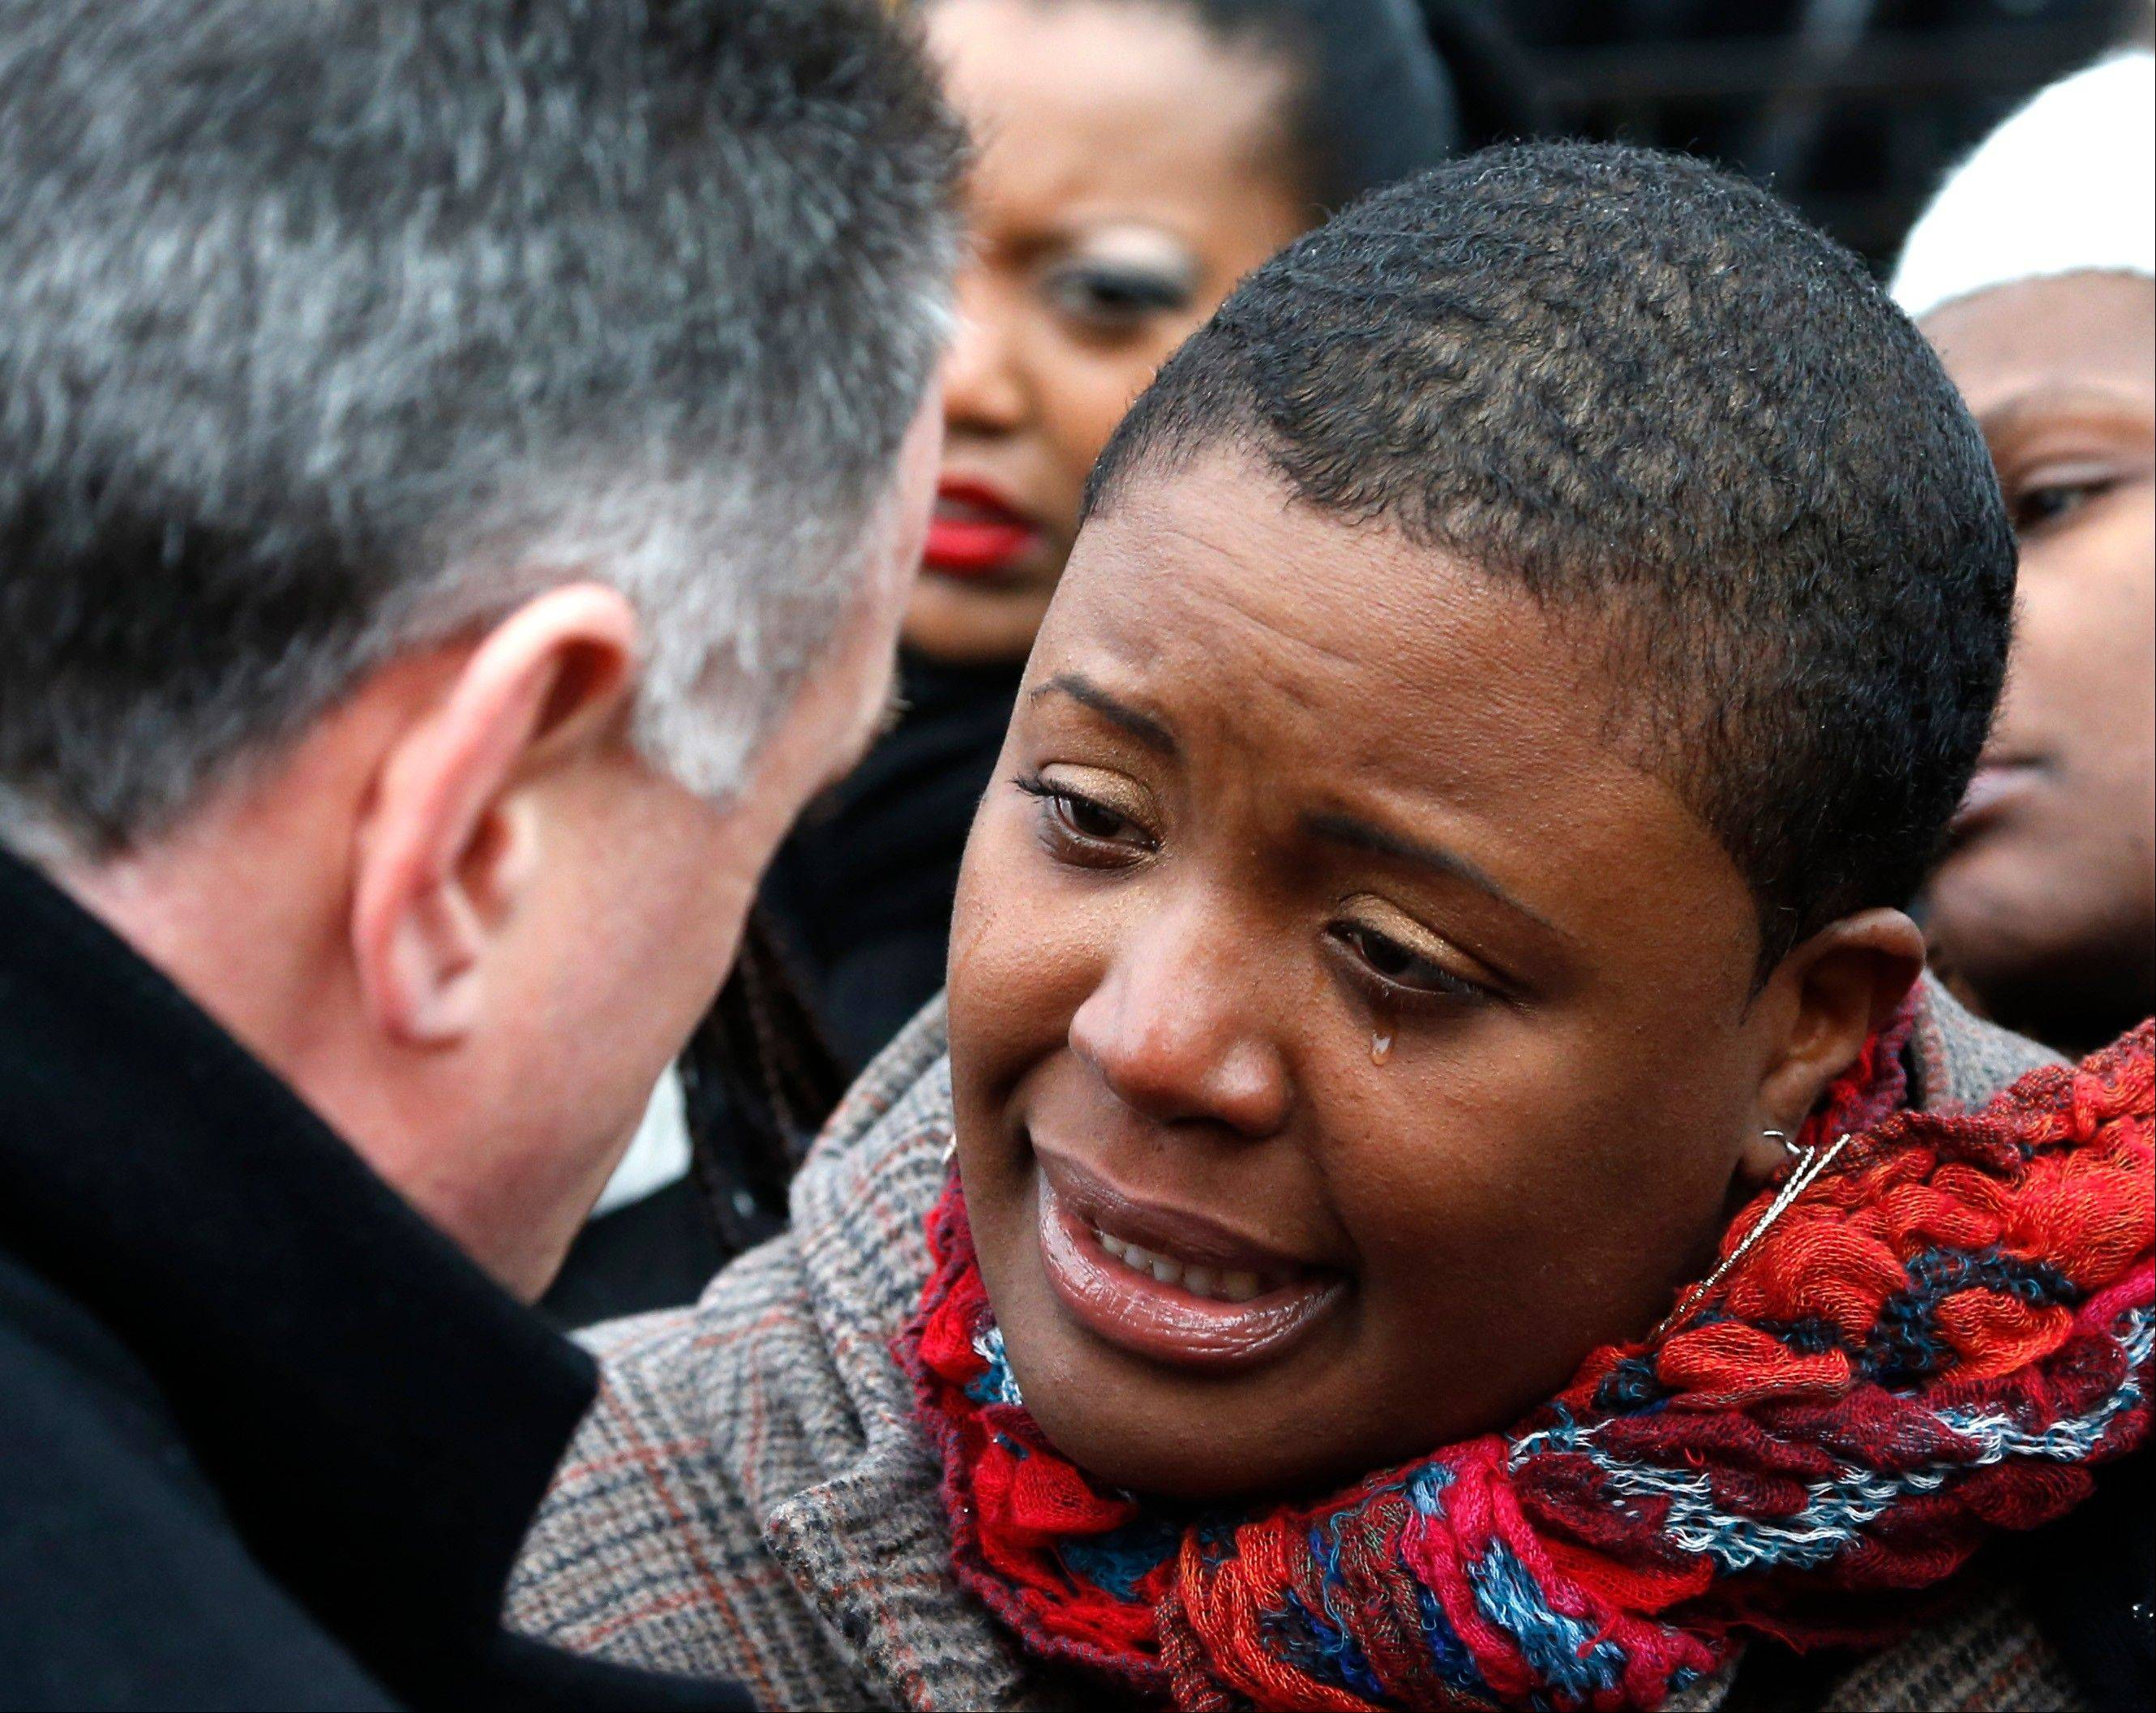 Cleopatra Pendelton cries as she talks with Chicago Police Superintendent Garry McCarthy before a news conference Wednesday seeking help from the public in solving her daughter's murder. Hadiya Pendelton, 15, who had performed in President Barack Obama's inauguration festivities, was killed in a Chicago park as she talked with friends on Tuesday.